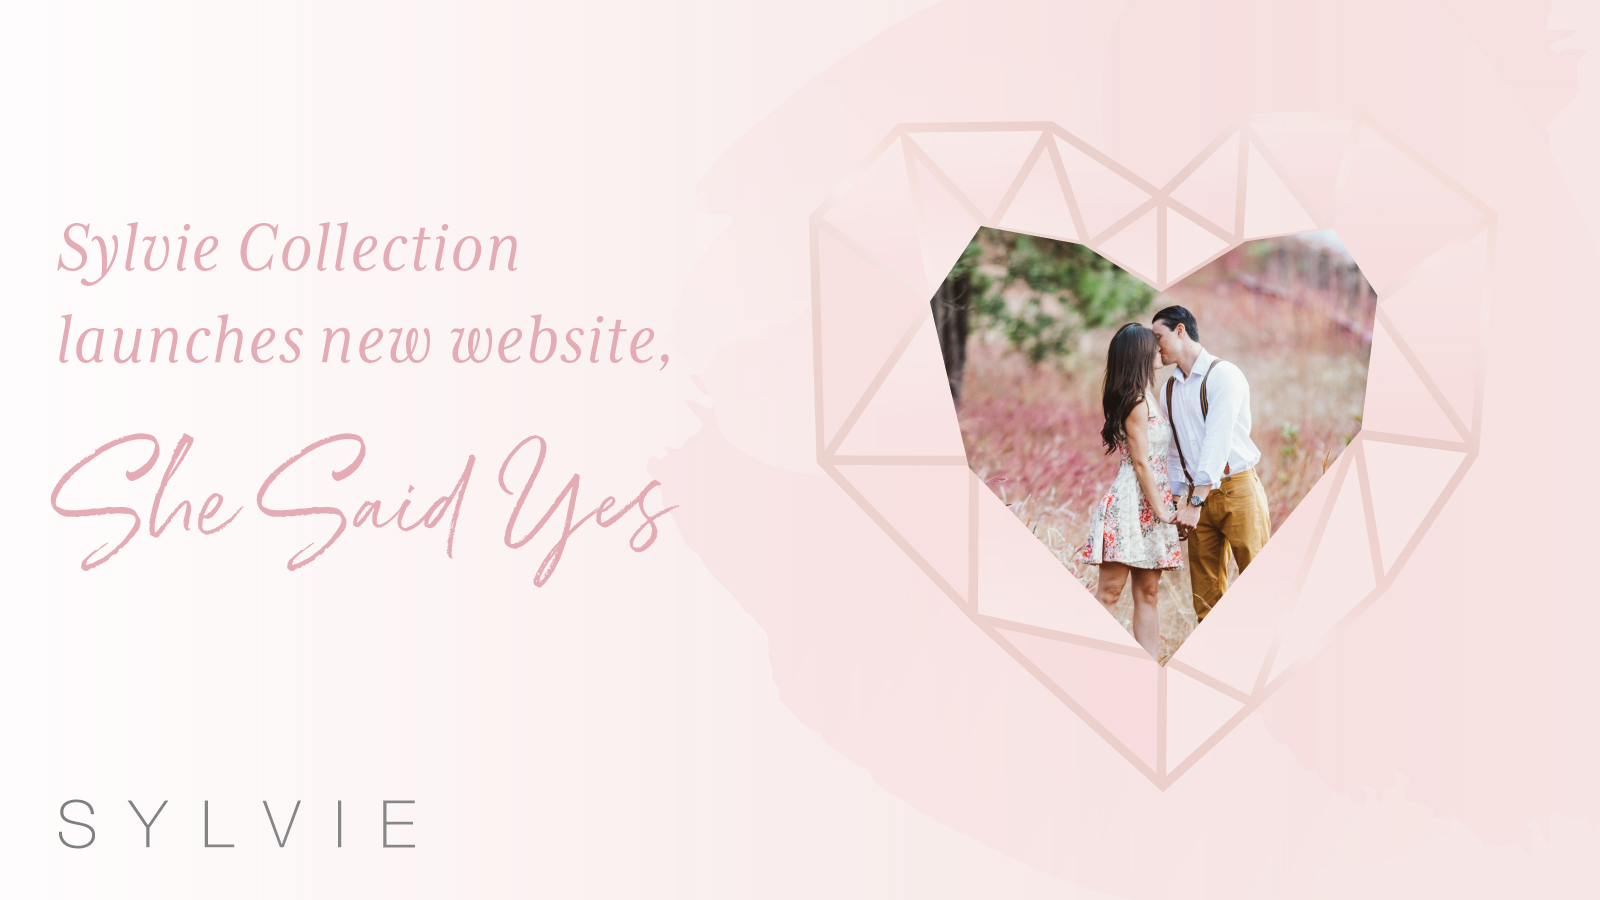 Sylvie Collection - New Website - She Said Yes